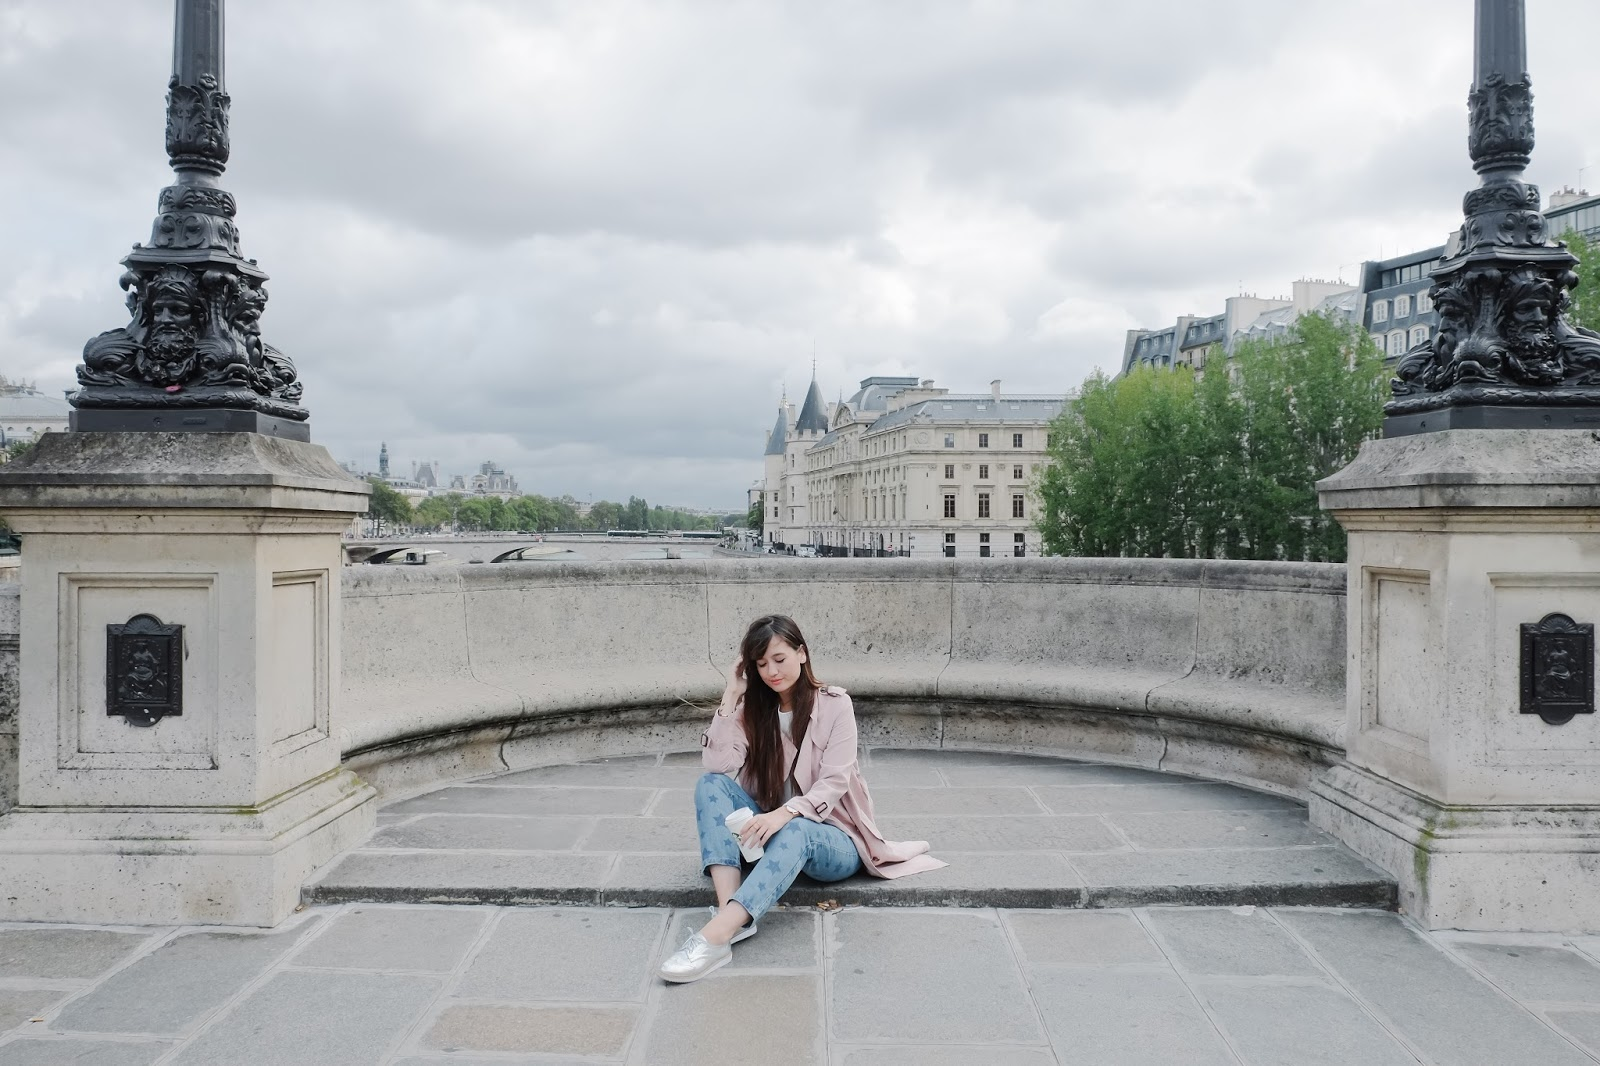 meetmeinparee, paris, style, look, chic parisian style, mode, blogger, look, cute style